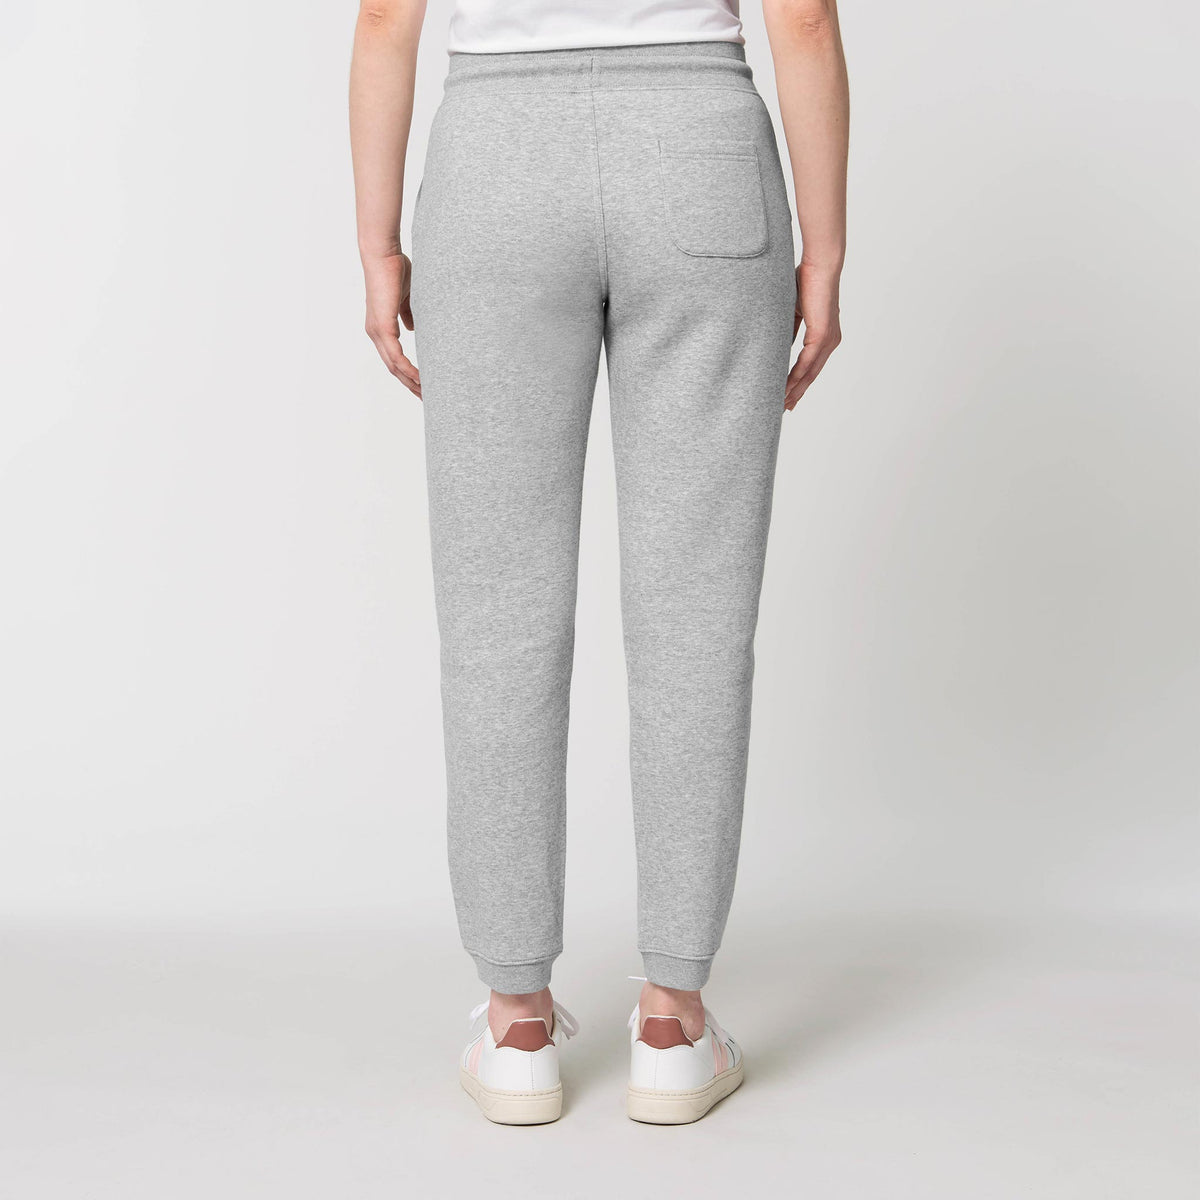 womens-grey-sweatpants